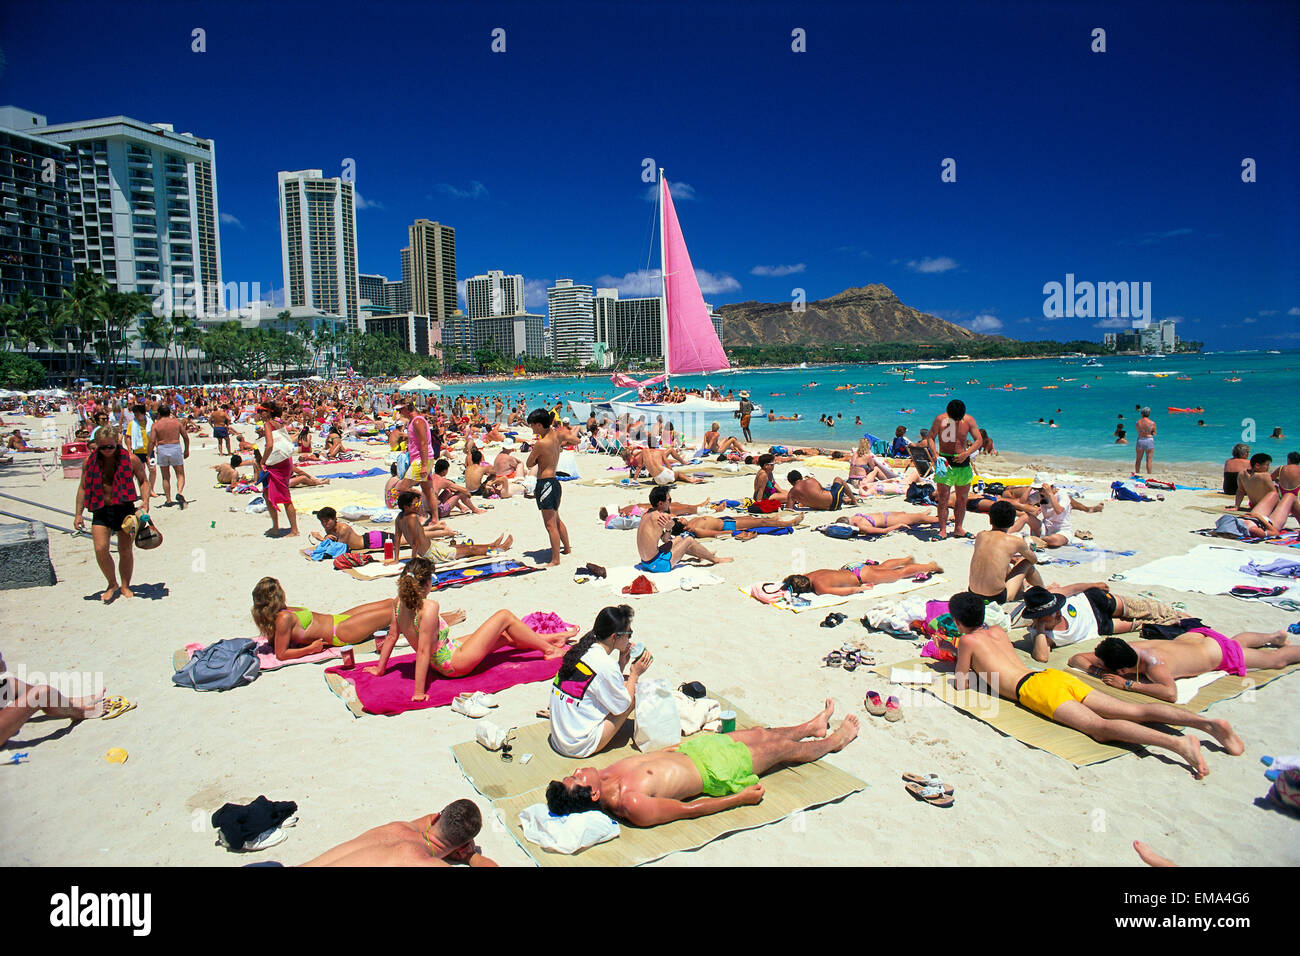 Hawaii Oahu Honolulu Waikiki Beach With Crowds Of People Diamond Head Background A42C